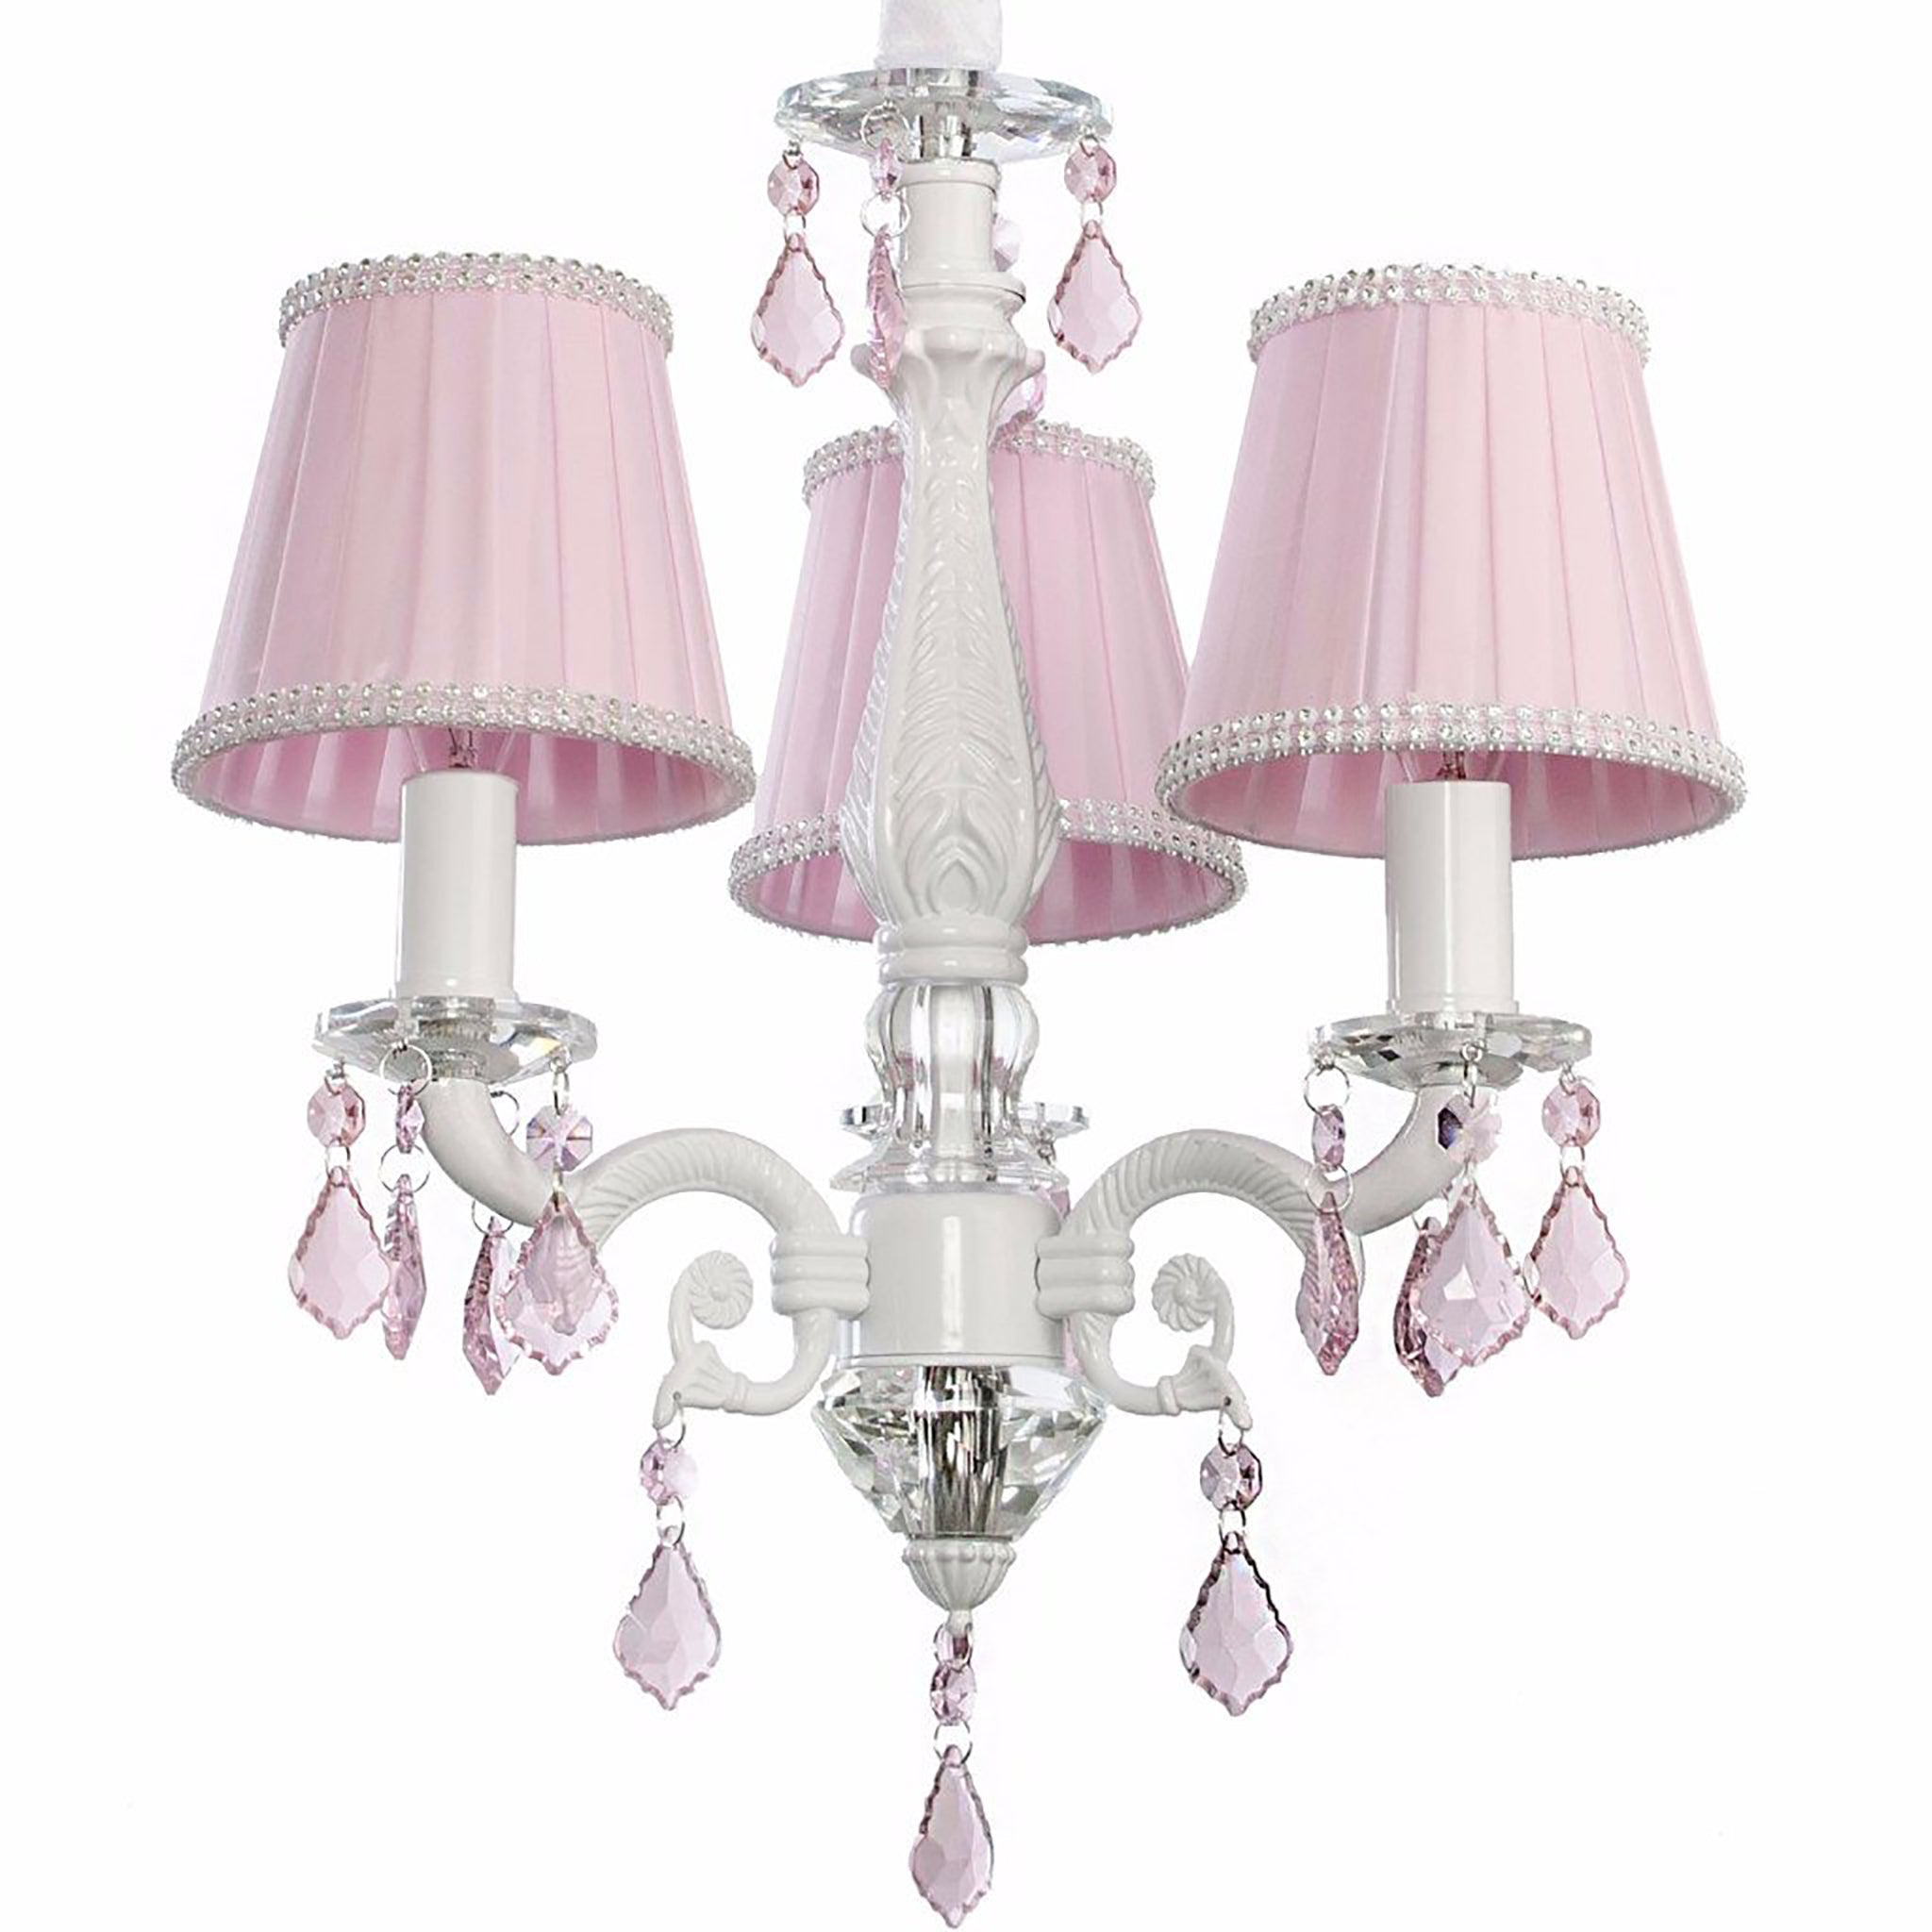 Charlotte chandelier in pink girls lighting firefly for Girl nursery lighting